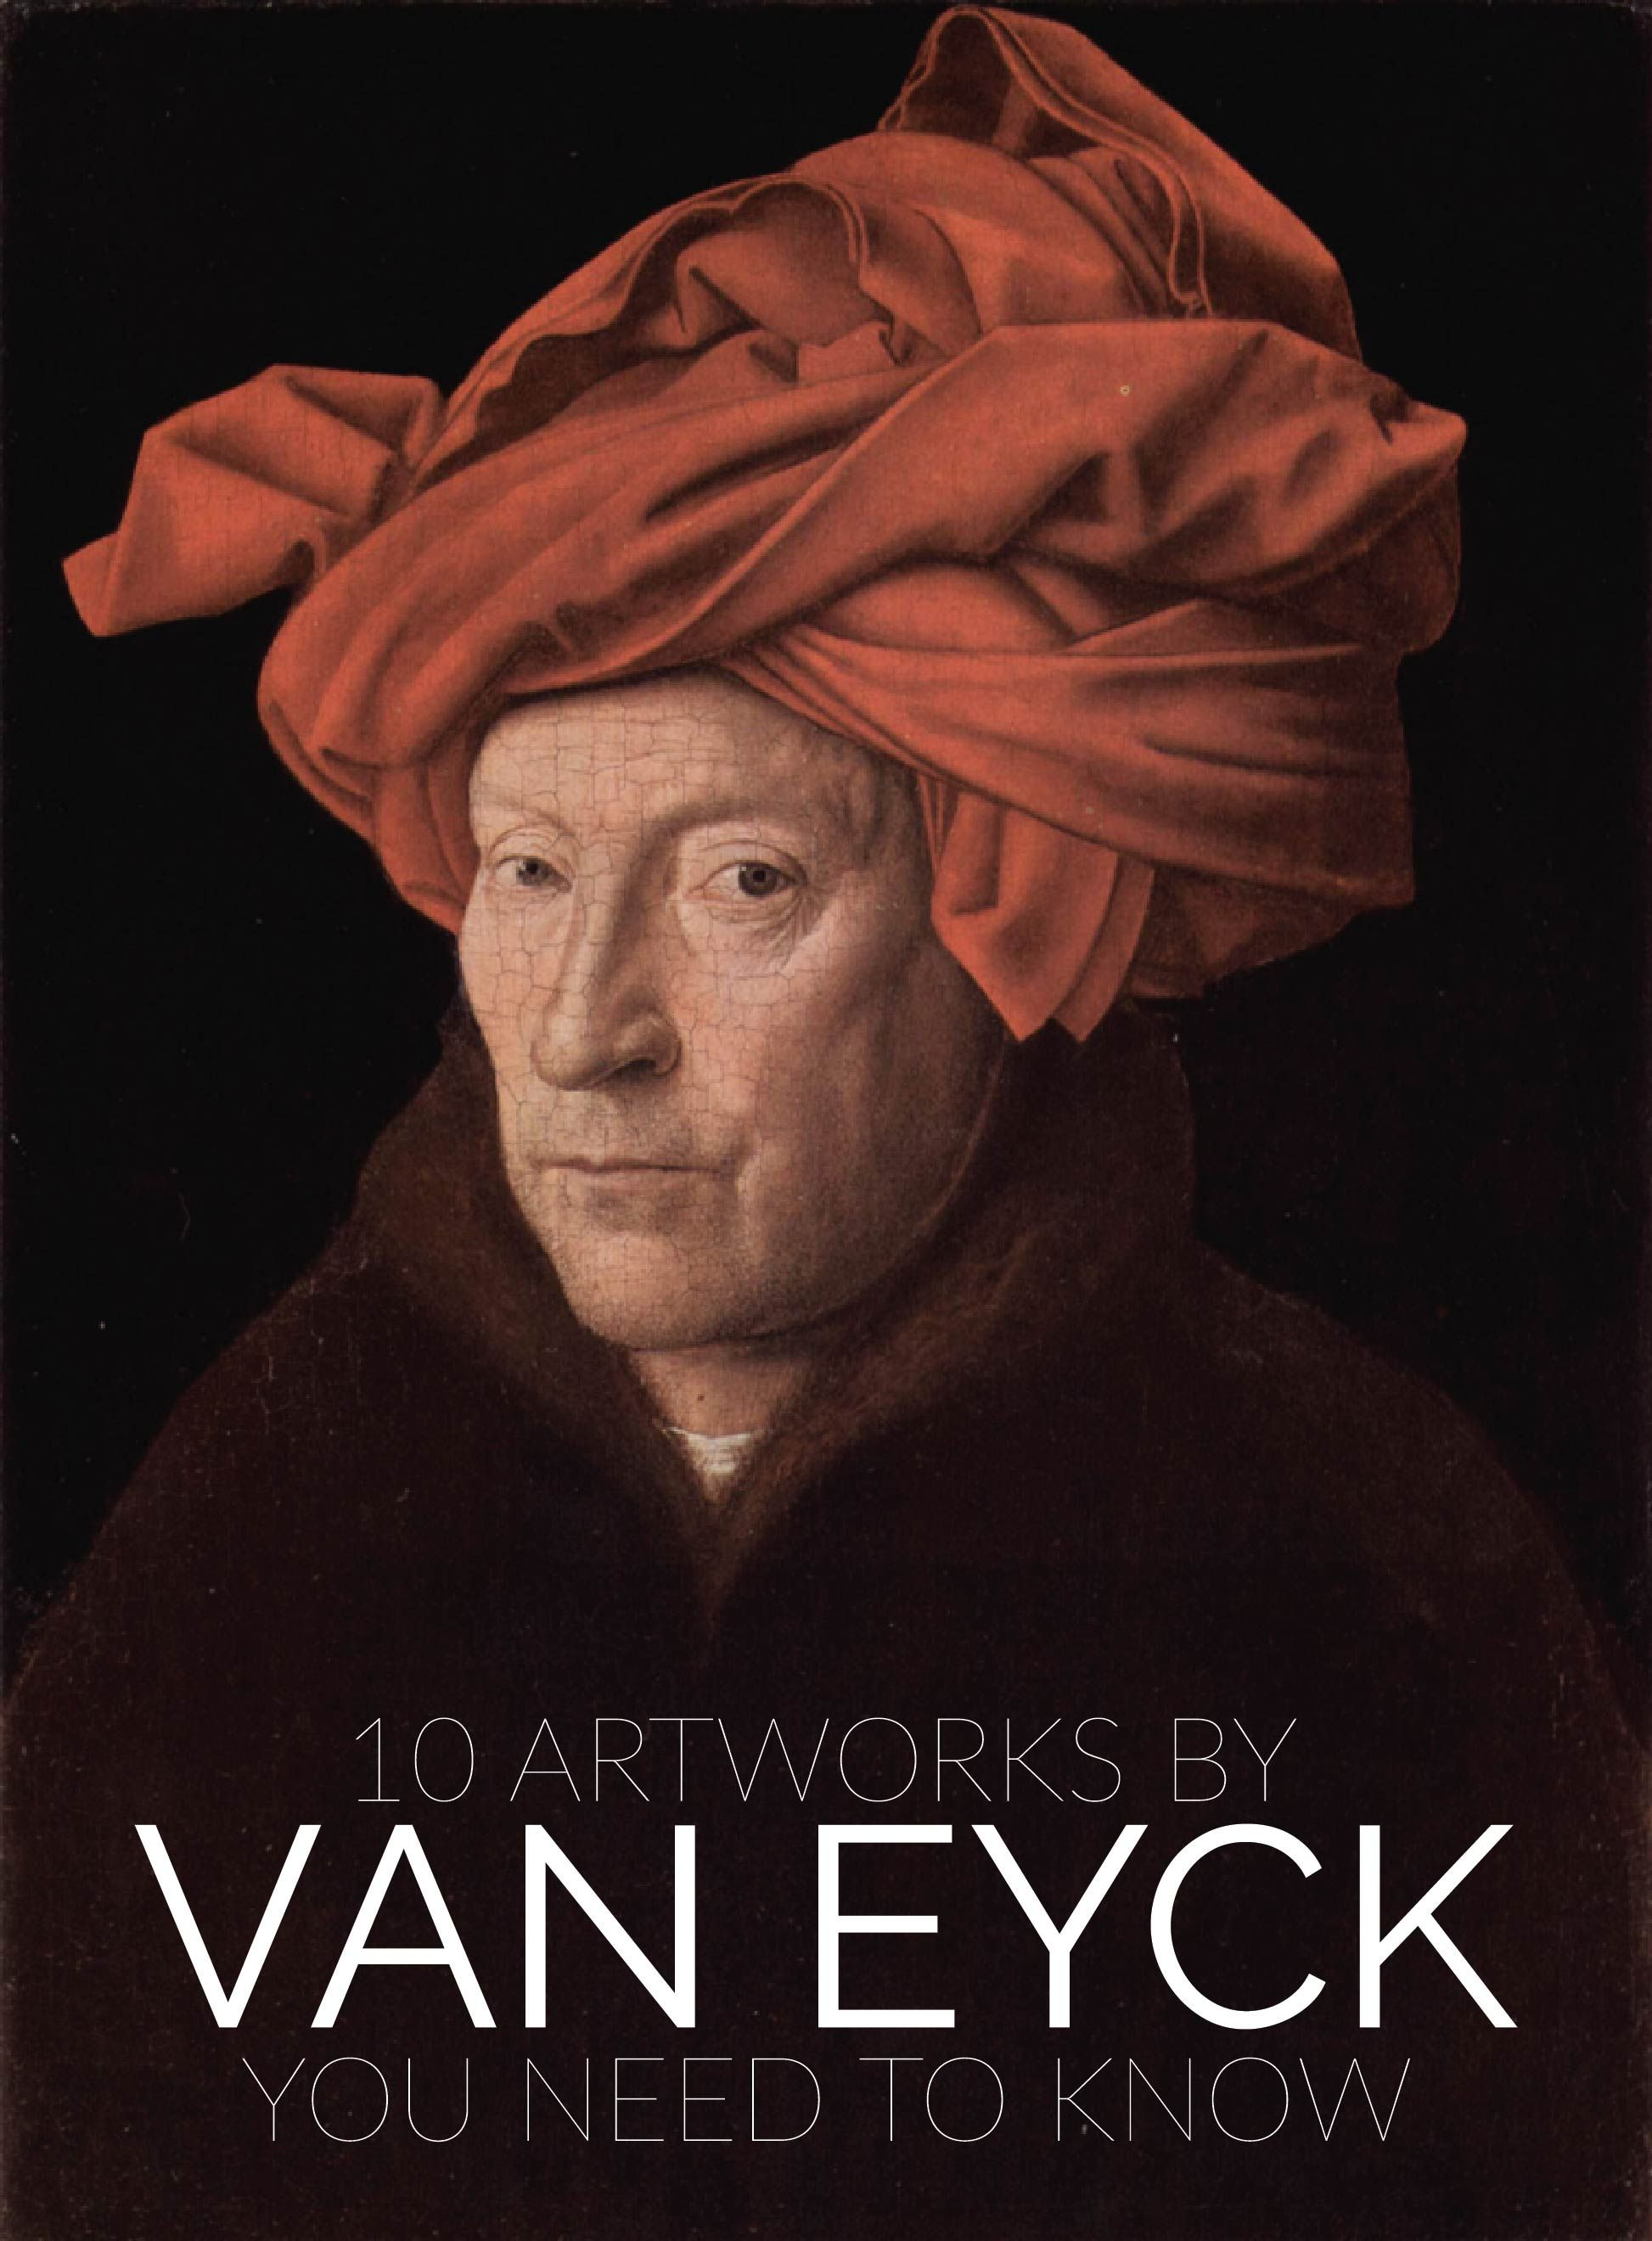 10 Artworks By Van Eyck You Need To Know Jan van eyck